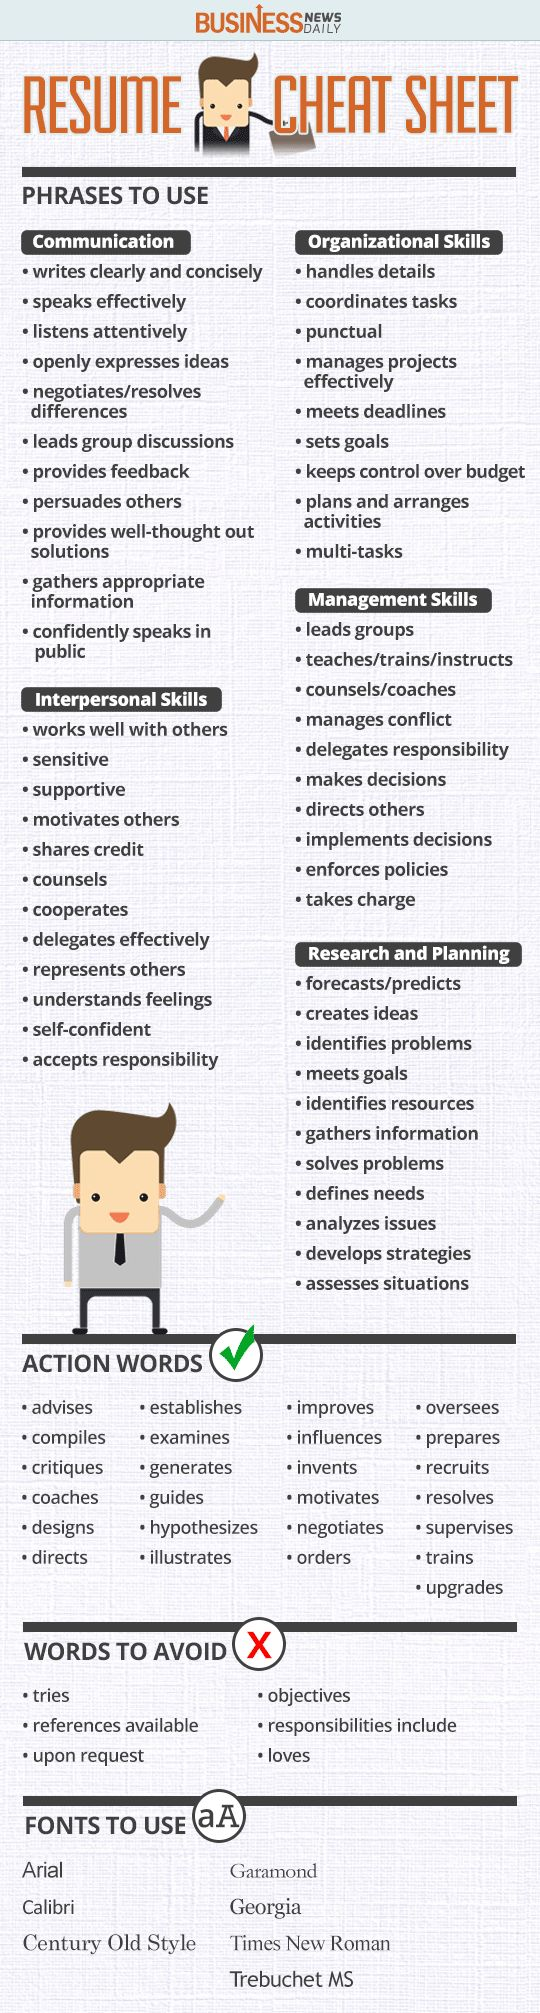 Opposenewapstandardsus  Stunning  Ideas About Resume On Pinterest  Cv Format Resume  With Excellent Resume Cheat Sheet Infographic Andrews Almost Done With A Complete Unit On Employment Which With Delightful Mba On Resume Also Cocktail Server Resume In Addition Good Objectives To Put On A Resume And Quick Resume Template As Well As Resume Goals Additionally Executive Summary Example Resume From Pinterestcom With Opposenewapstandardsus  Excellent  Ideas About Resume On Pinterest  Cv Format Resume  With Delightful Resume Cheat Sheet Infographic Andrews Almost Done With A Complete Unit On Employment Which And Stunning Mba On Resume Also Cocktail Server Resume In Addition Good Objectives To Put On A Resume From Pinterestcom